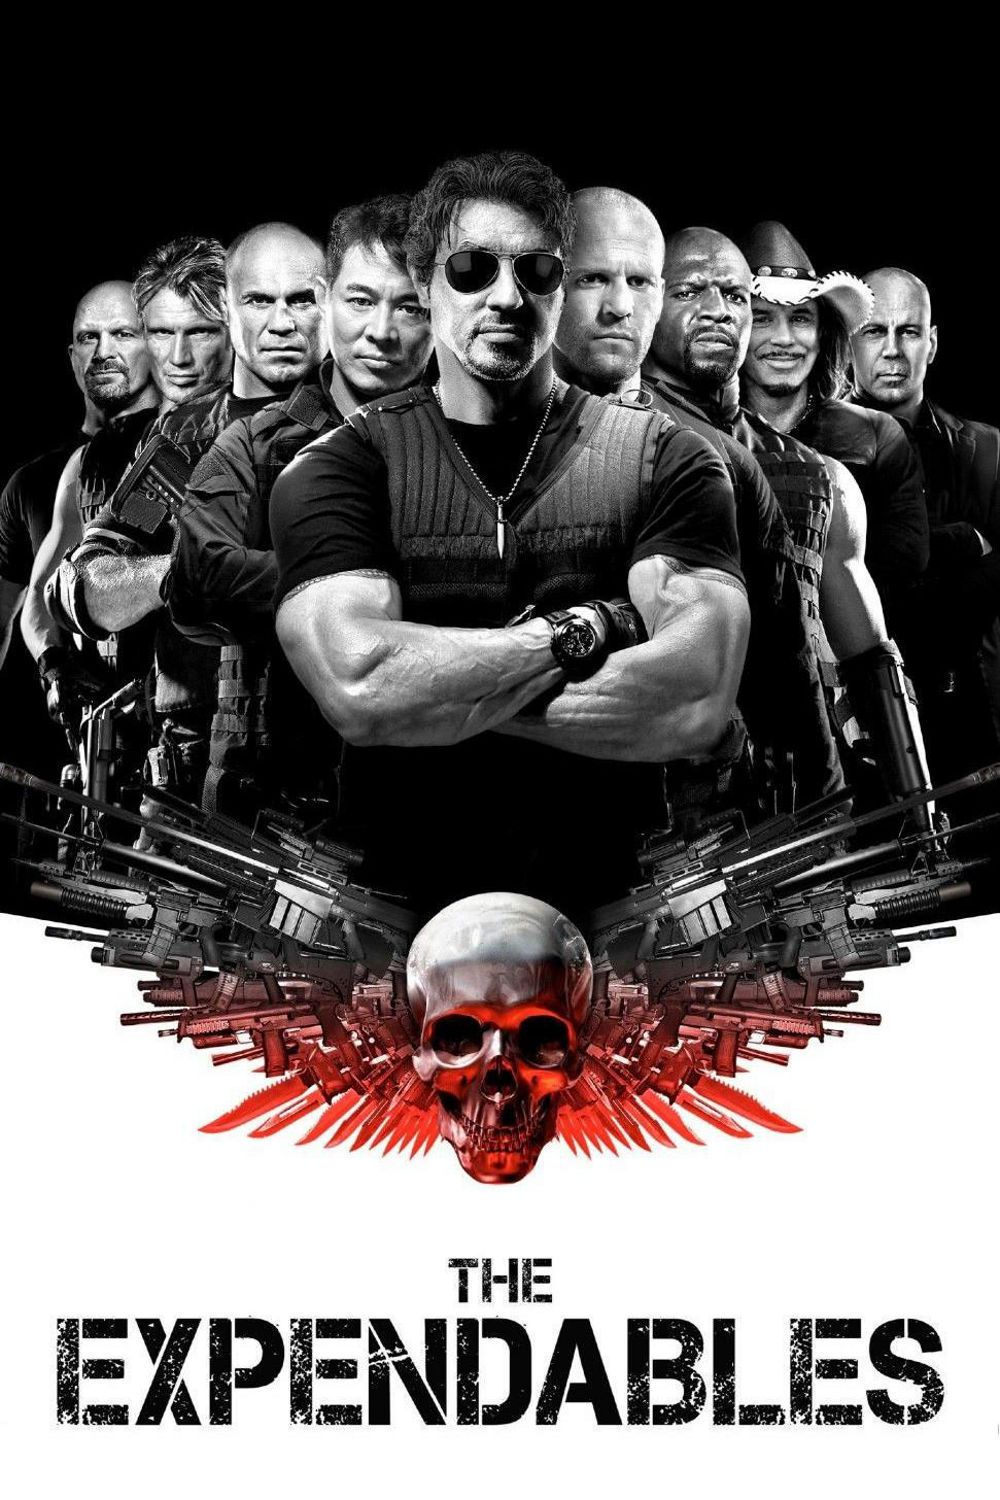 The Expendables 2010 The Expendables Expendables Movie Movie Posters